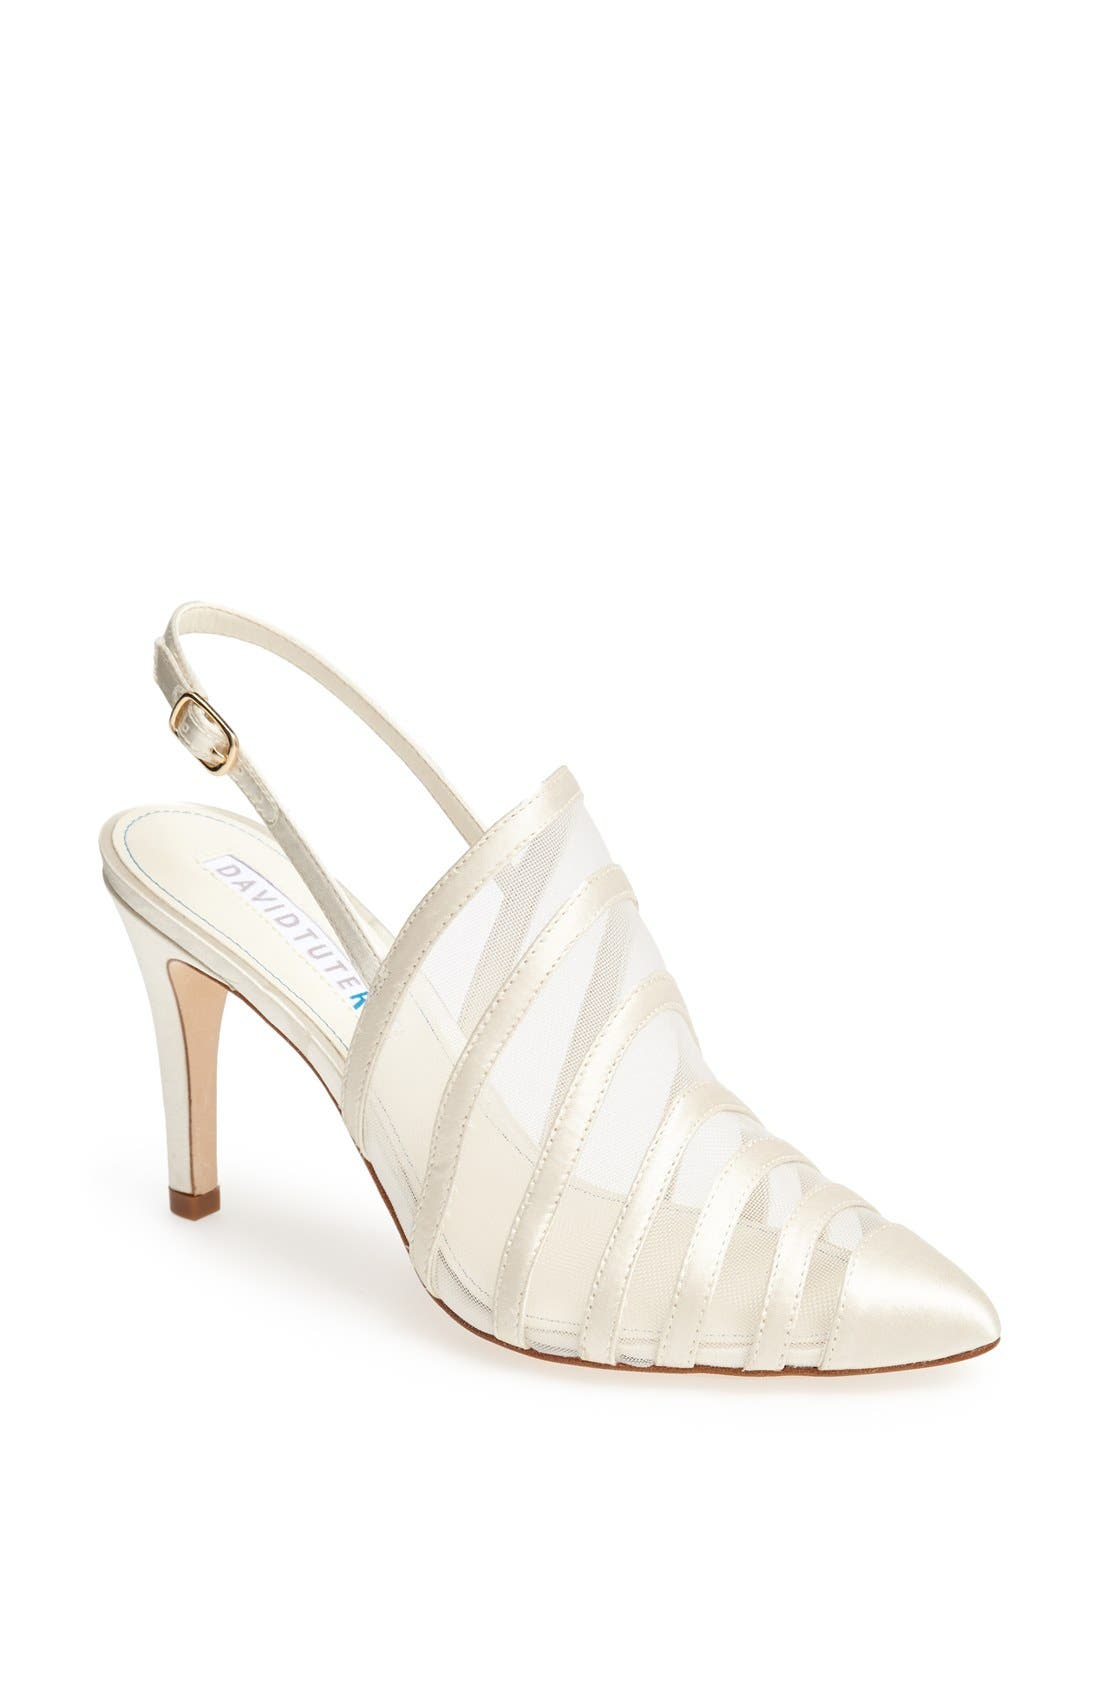 Main Image - David Tutera 'Hazy' Pump